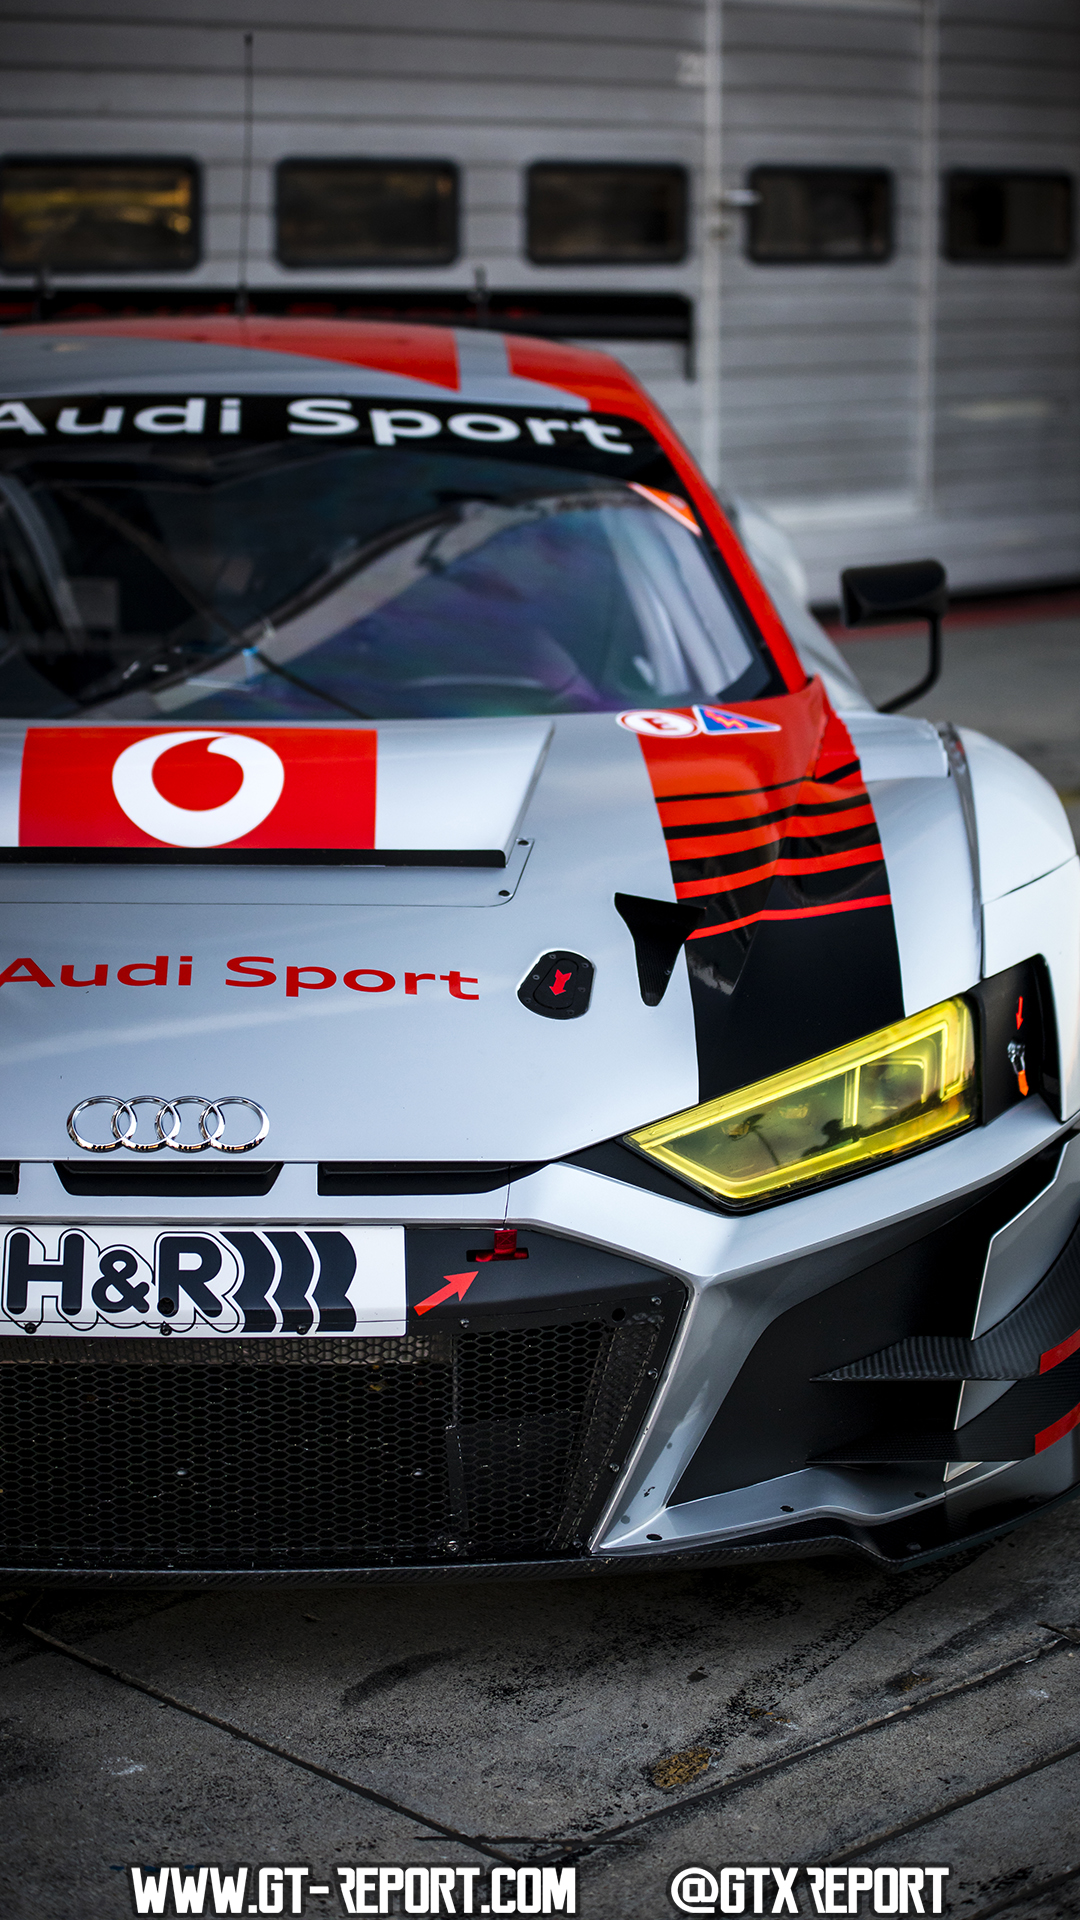 Audi R8 Lms Gt3 Evo 2019 Wallpaper Gt Report